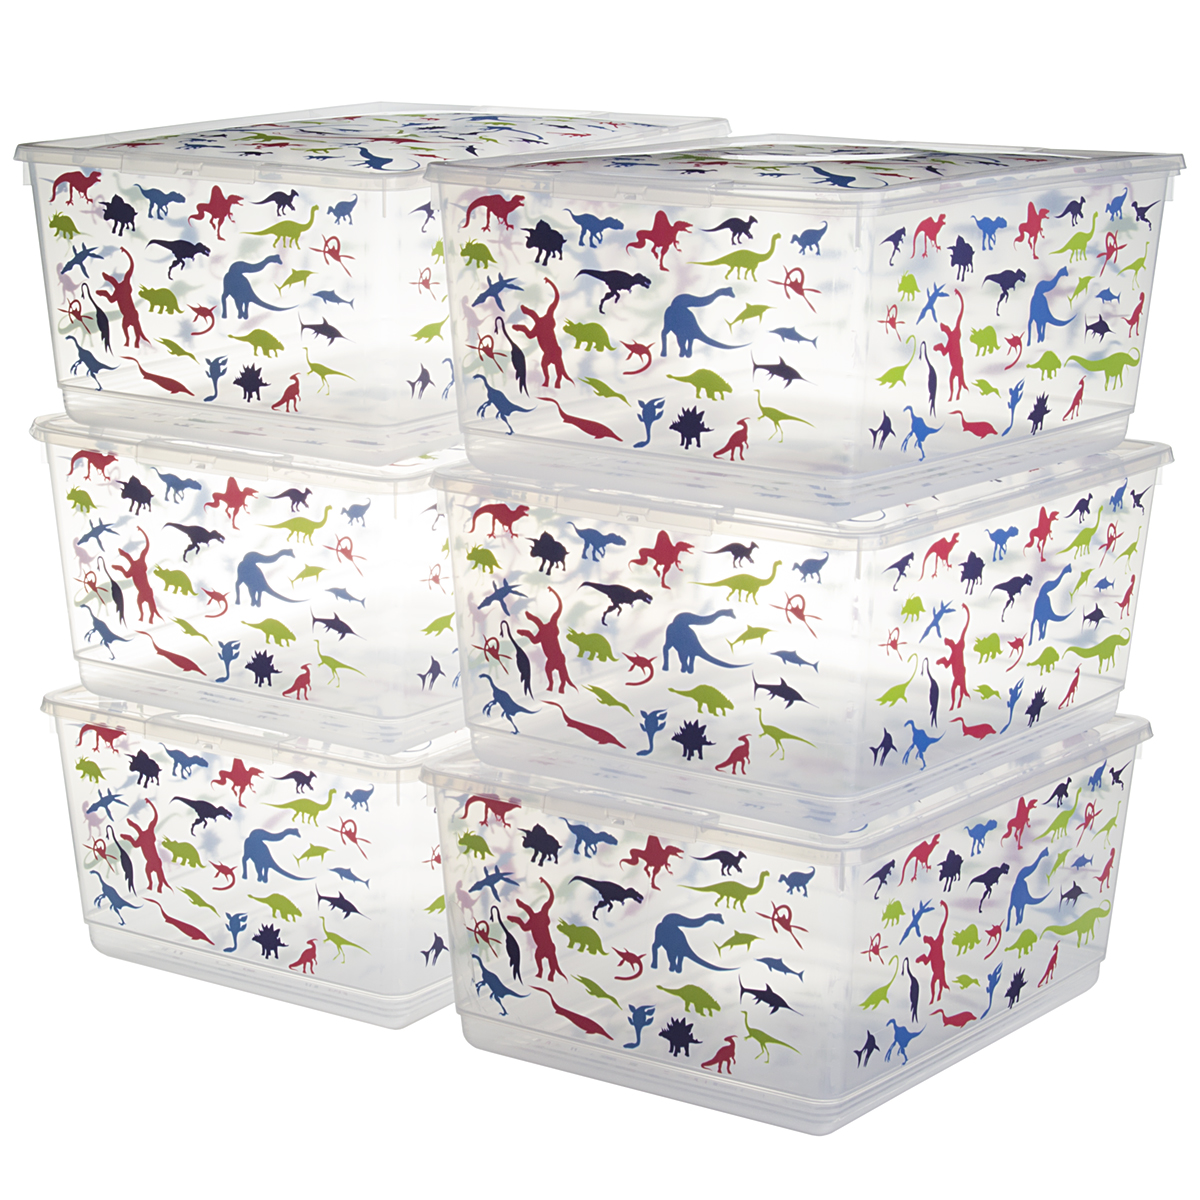 6 Pack KIS UrBin Large Plastic Storage Bins With Lids Home Organization Containers Stacking Clothing School Crafts